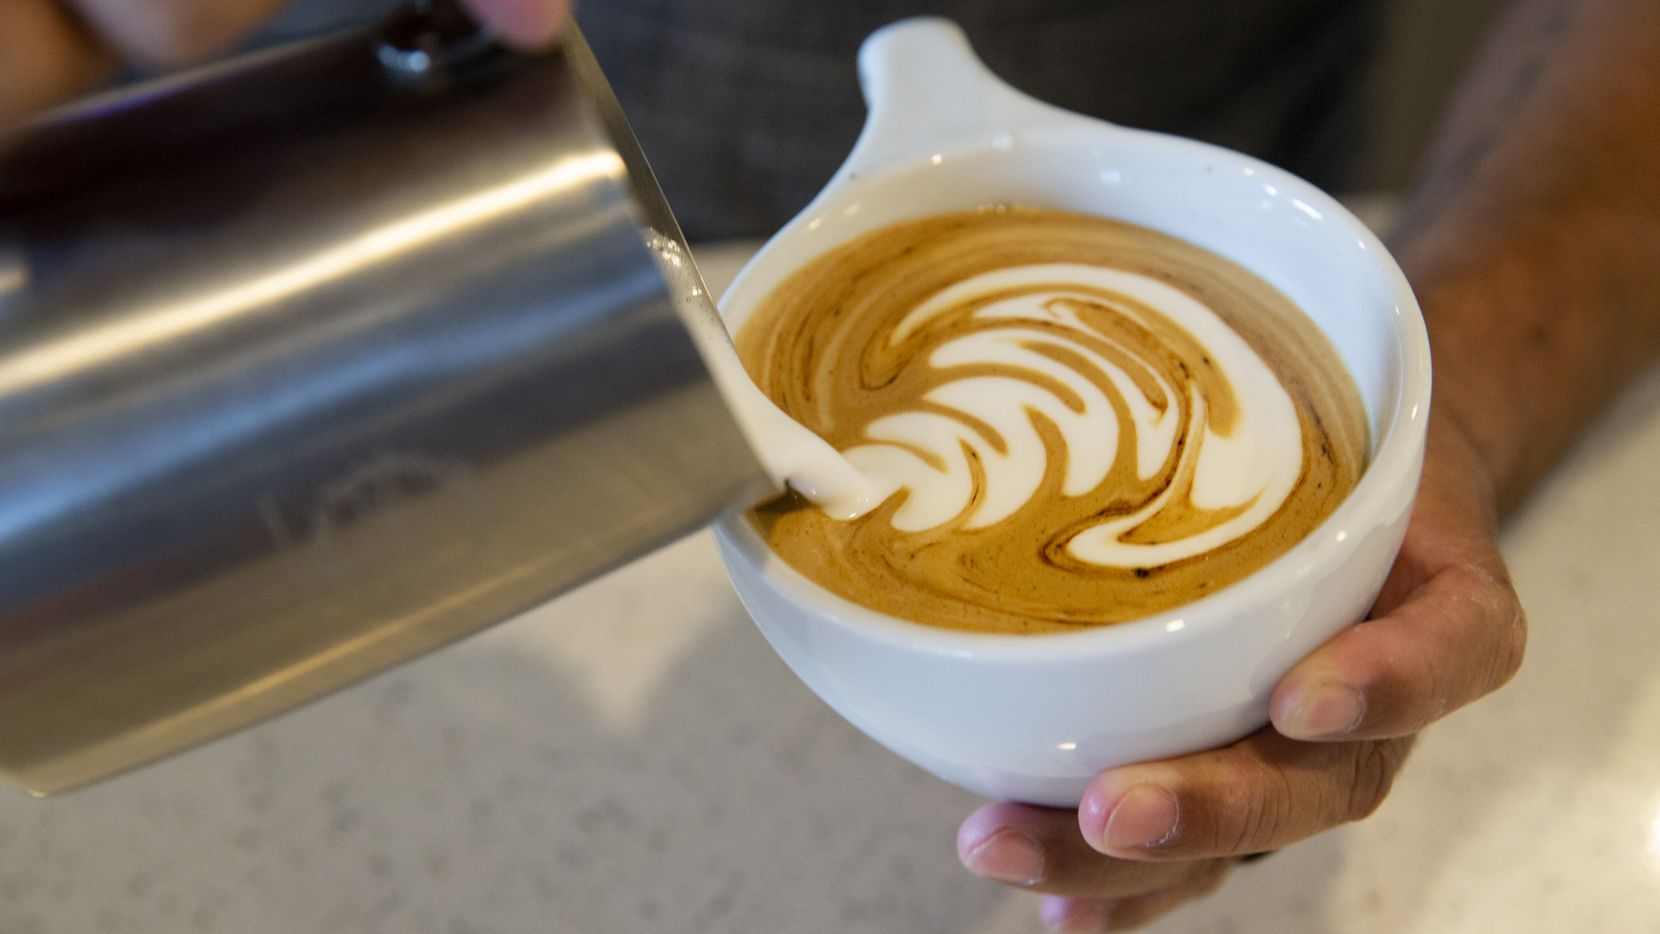 A drink is made at Gold & Grounds Coffee Co. on Sept. 14, 2020 in Arlington. We have gathered locations in Allen where you can celebrate International Coffee Day, Sept. 29.